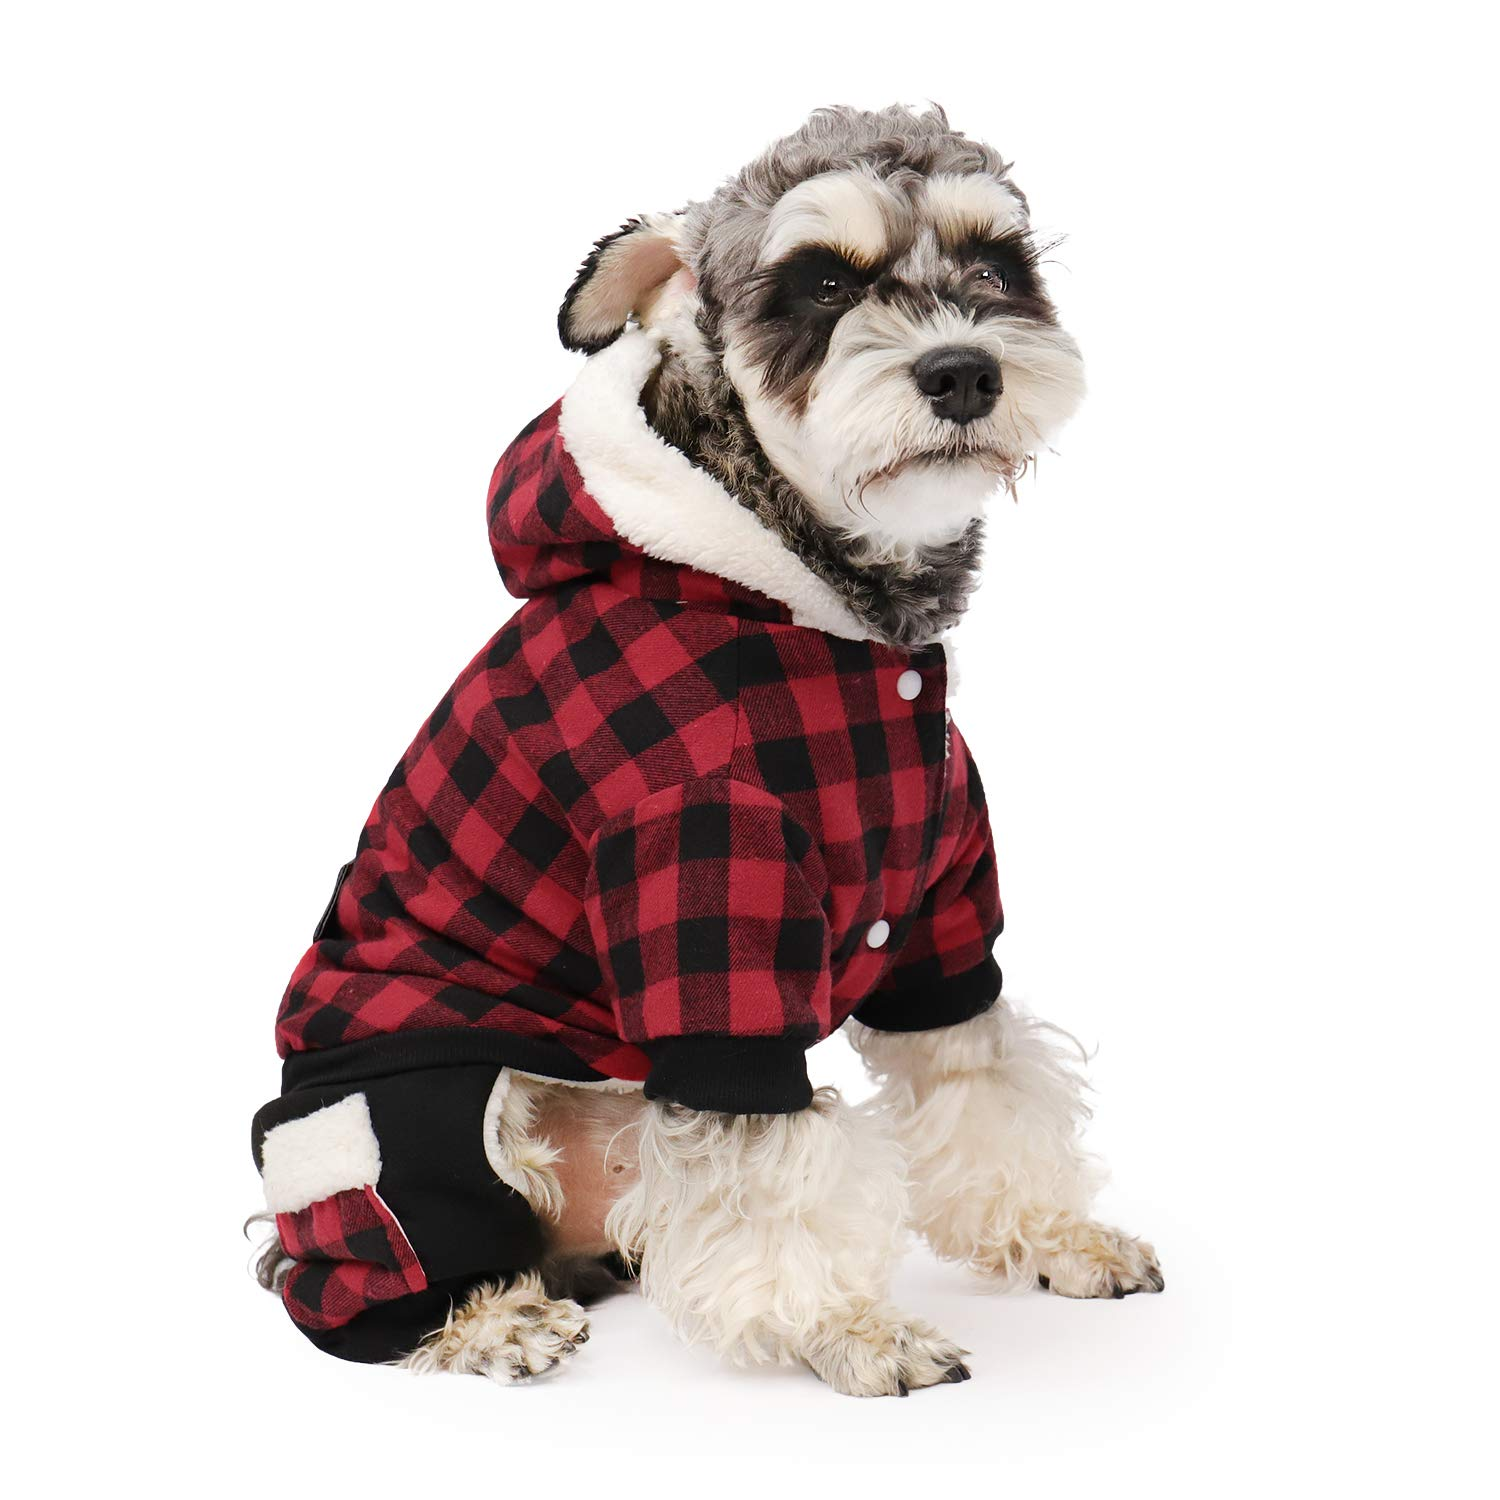 PAWZ Road Dog Plaid Coat Pet Winter Clothes Warm and Soft for Small and Medium Dogs Red XS by PAWZ Road